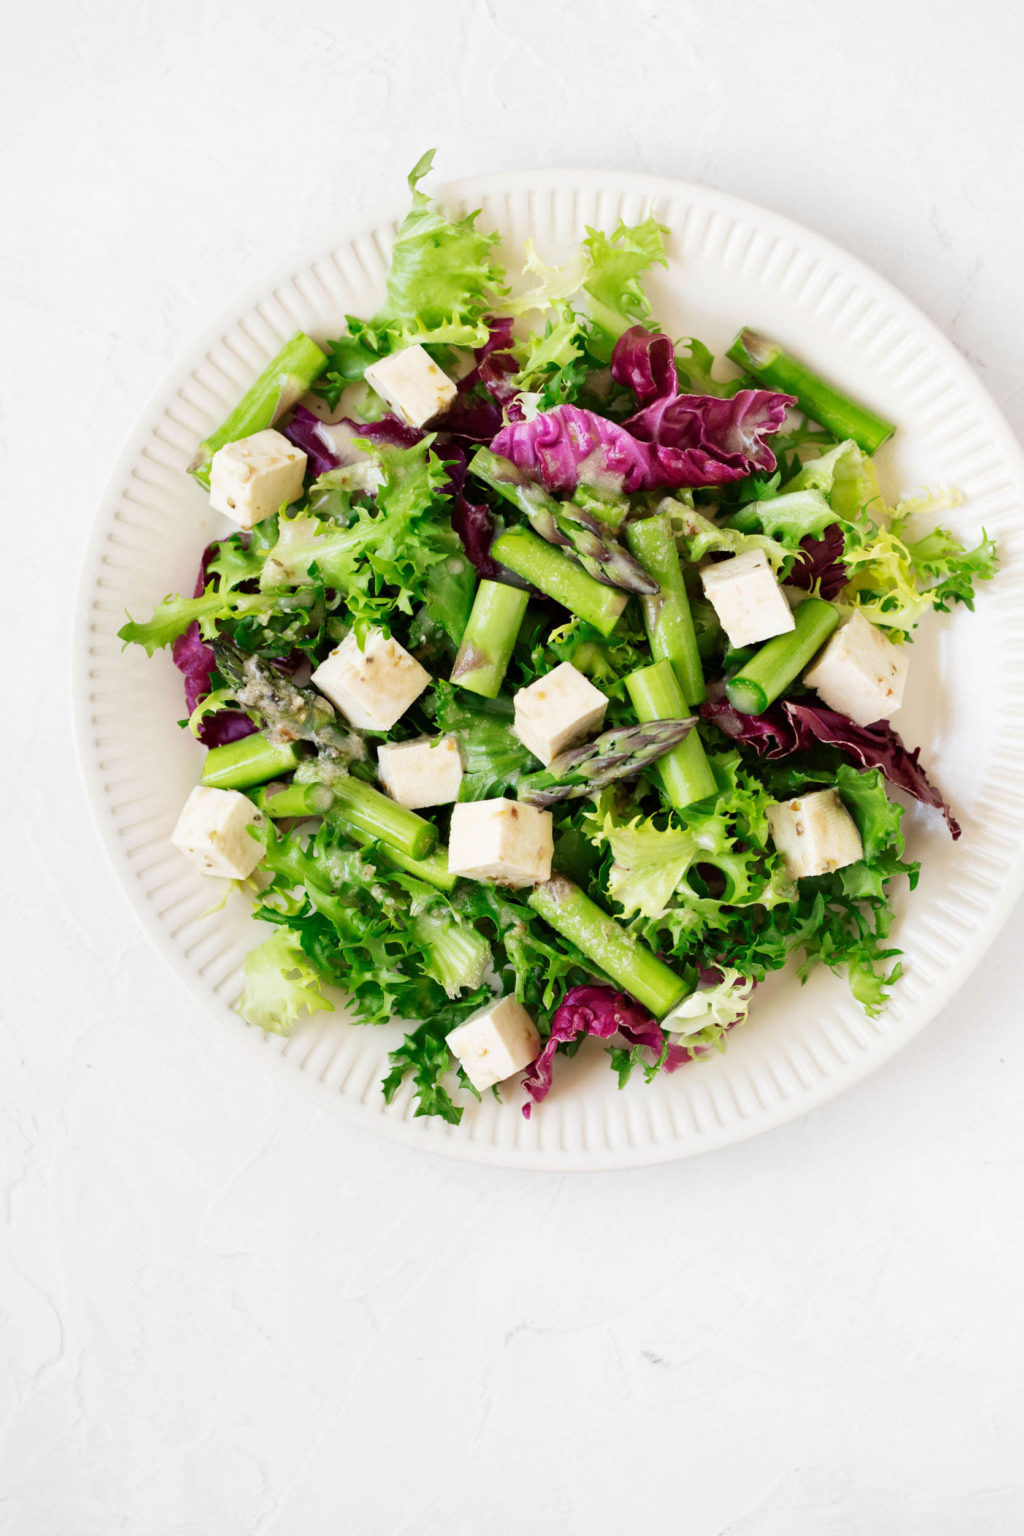 Bright, vibrant spring salad served on white slotted ceramic plates. The marinated tofu mixture is part of the salad.